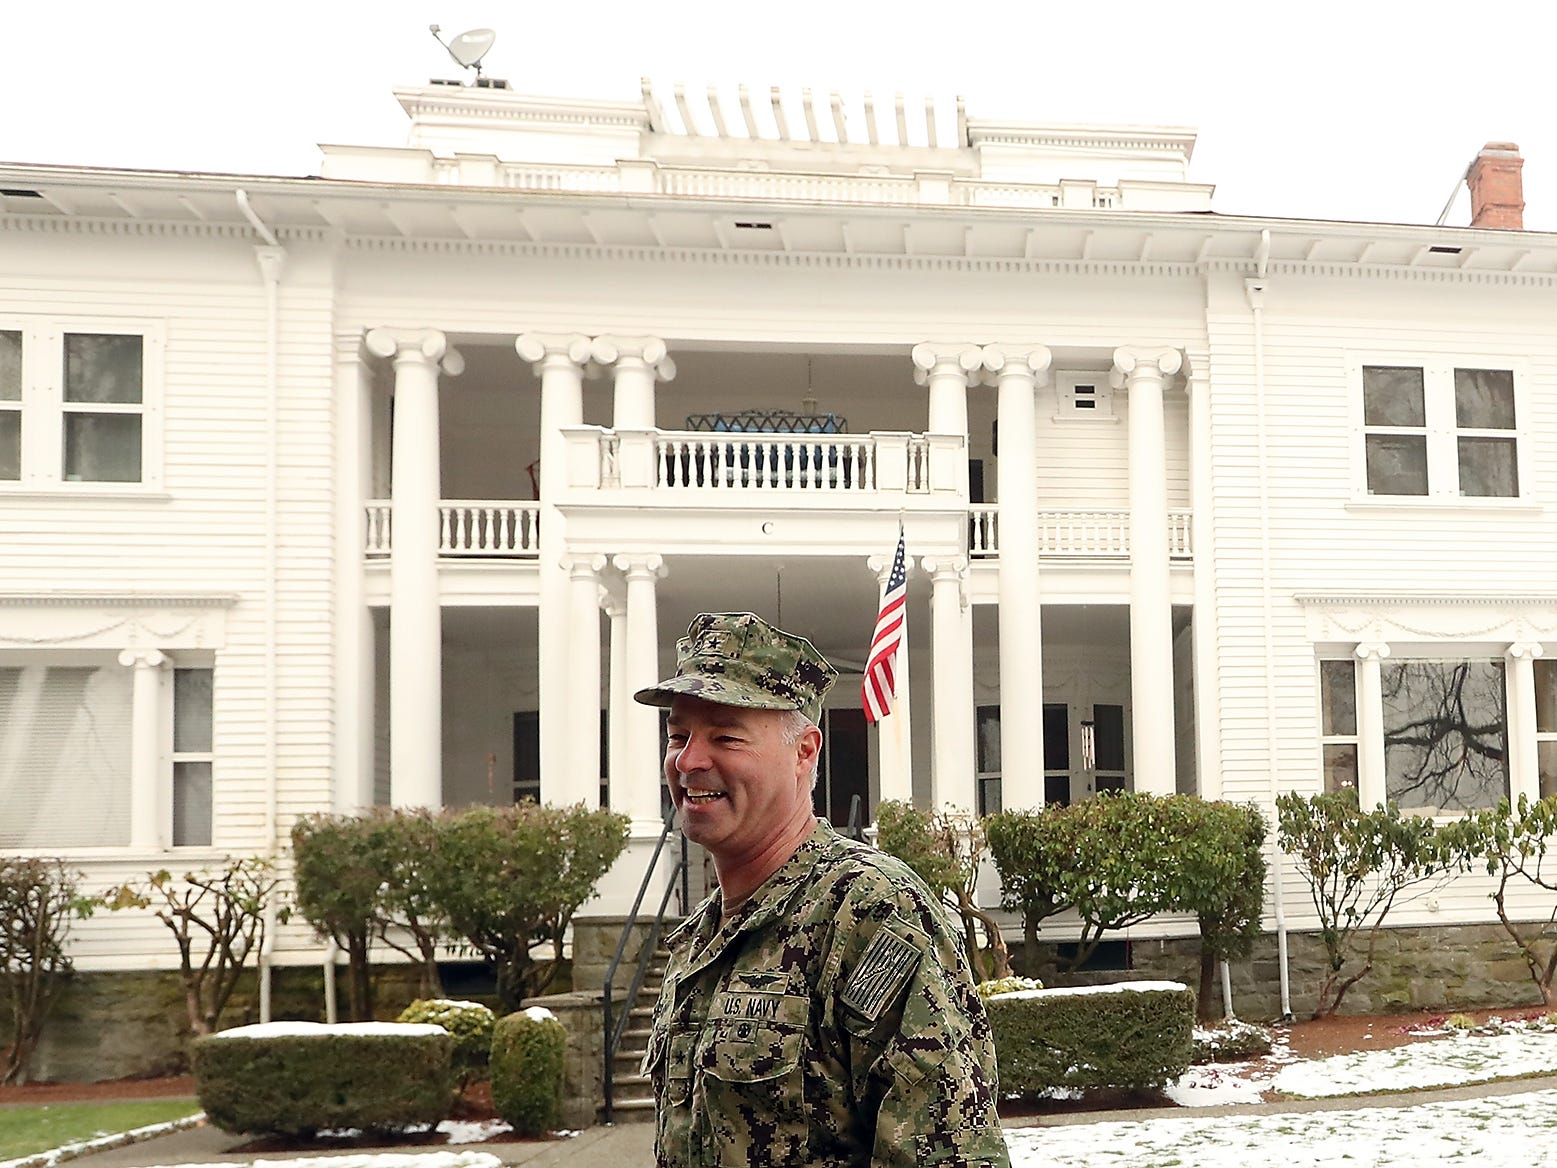 Rear Admiral Scott Gray, Commander of Navy Region Northwest, in front of the 1896 historical house that his family lives in called Quarters C at Naval Base Kitsap Bremerton on Thursday, February 7, 2019.